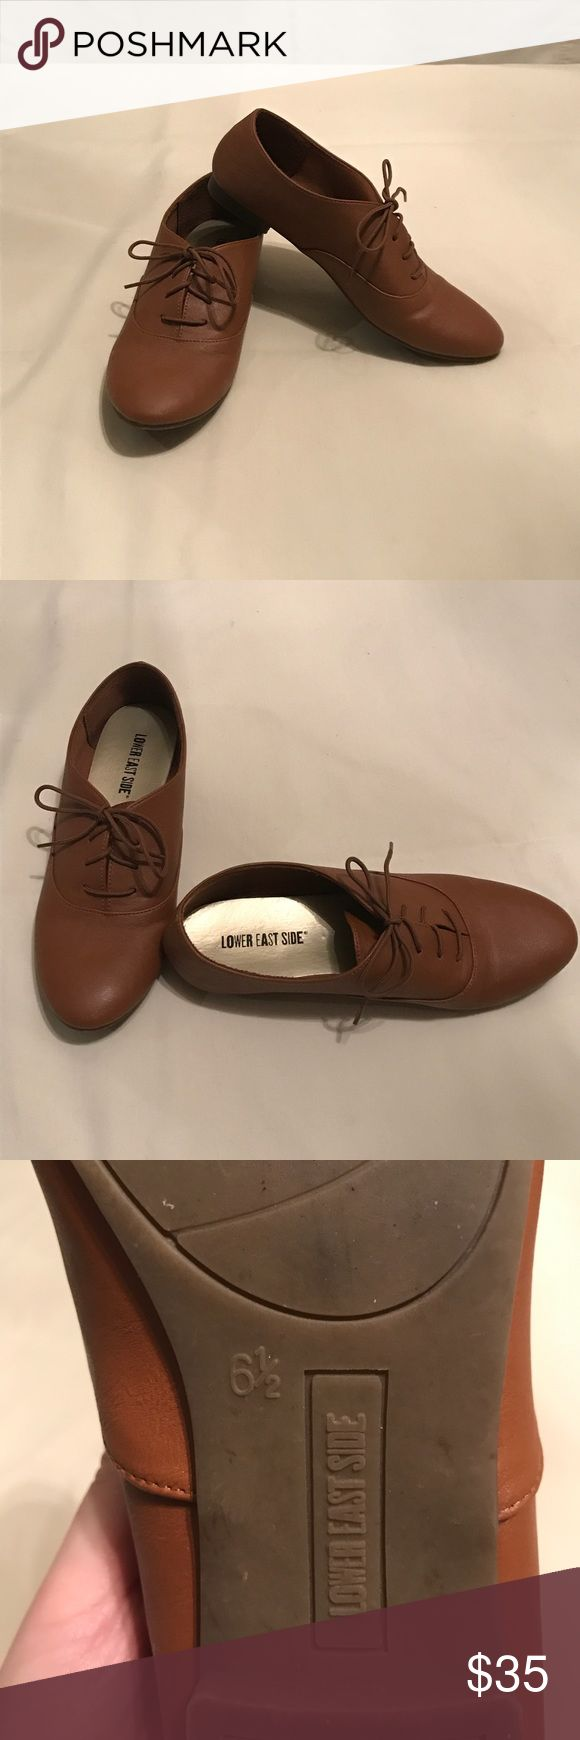 Brown Payless shoes. Size 6 1/2 Man made flat oxford lace up shoes. Very comfortable!  Lower East Side by Payless Shoes Flats & Loafers